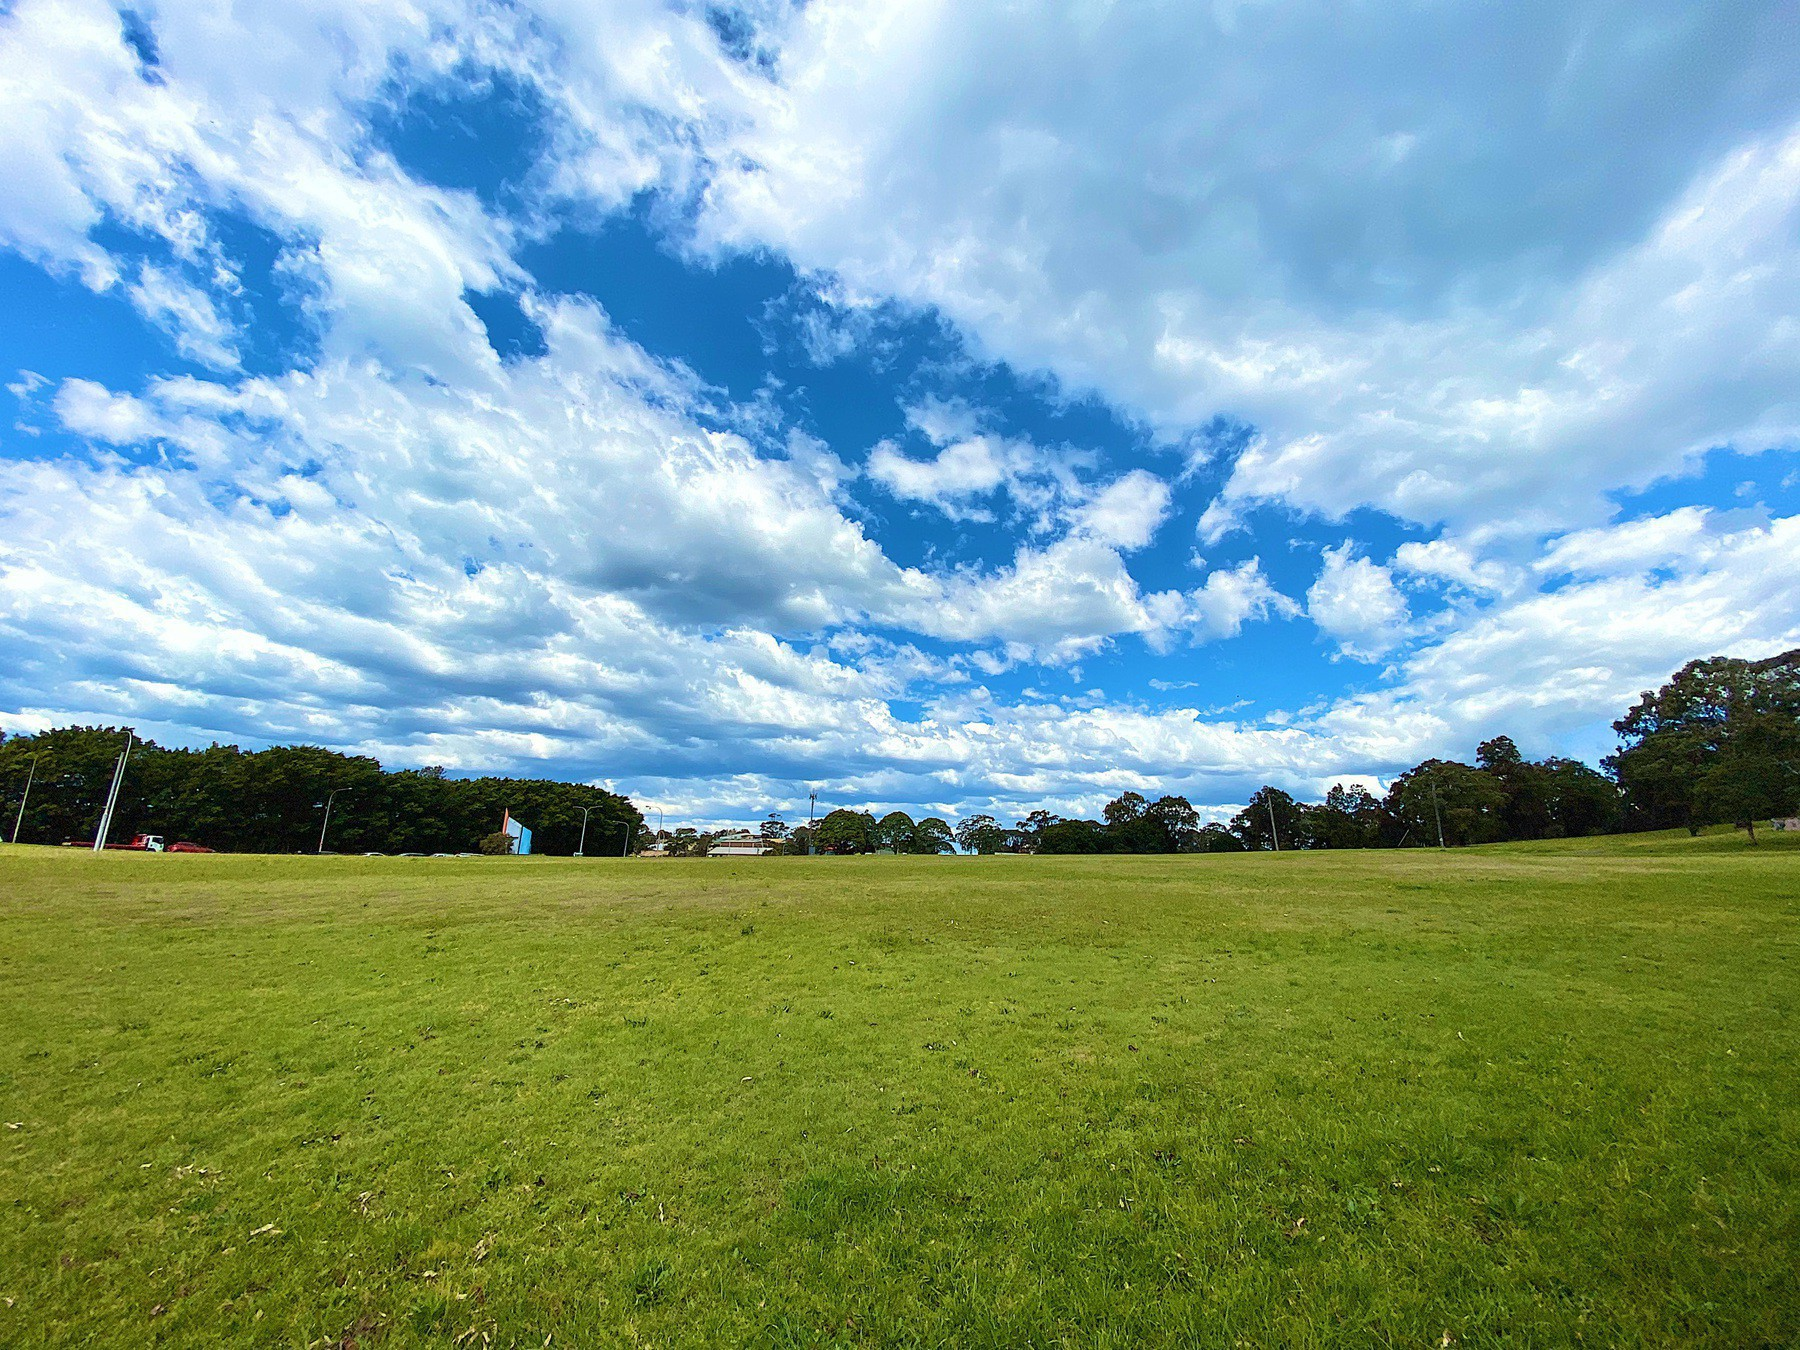 A green field with a blue sky full of fluffy clouds